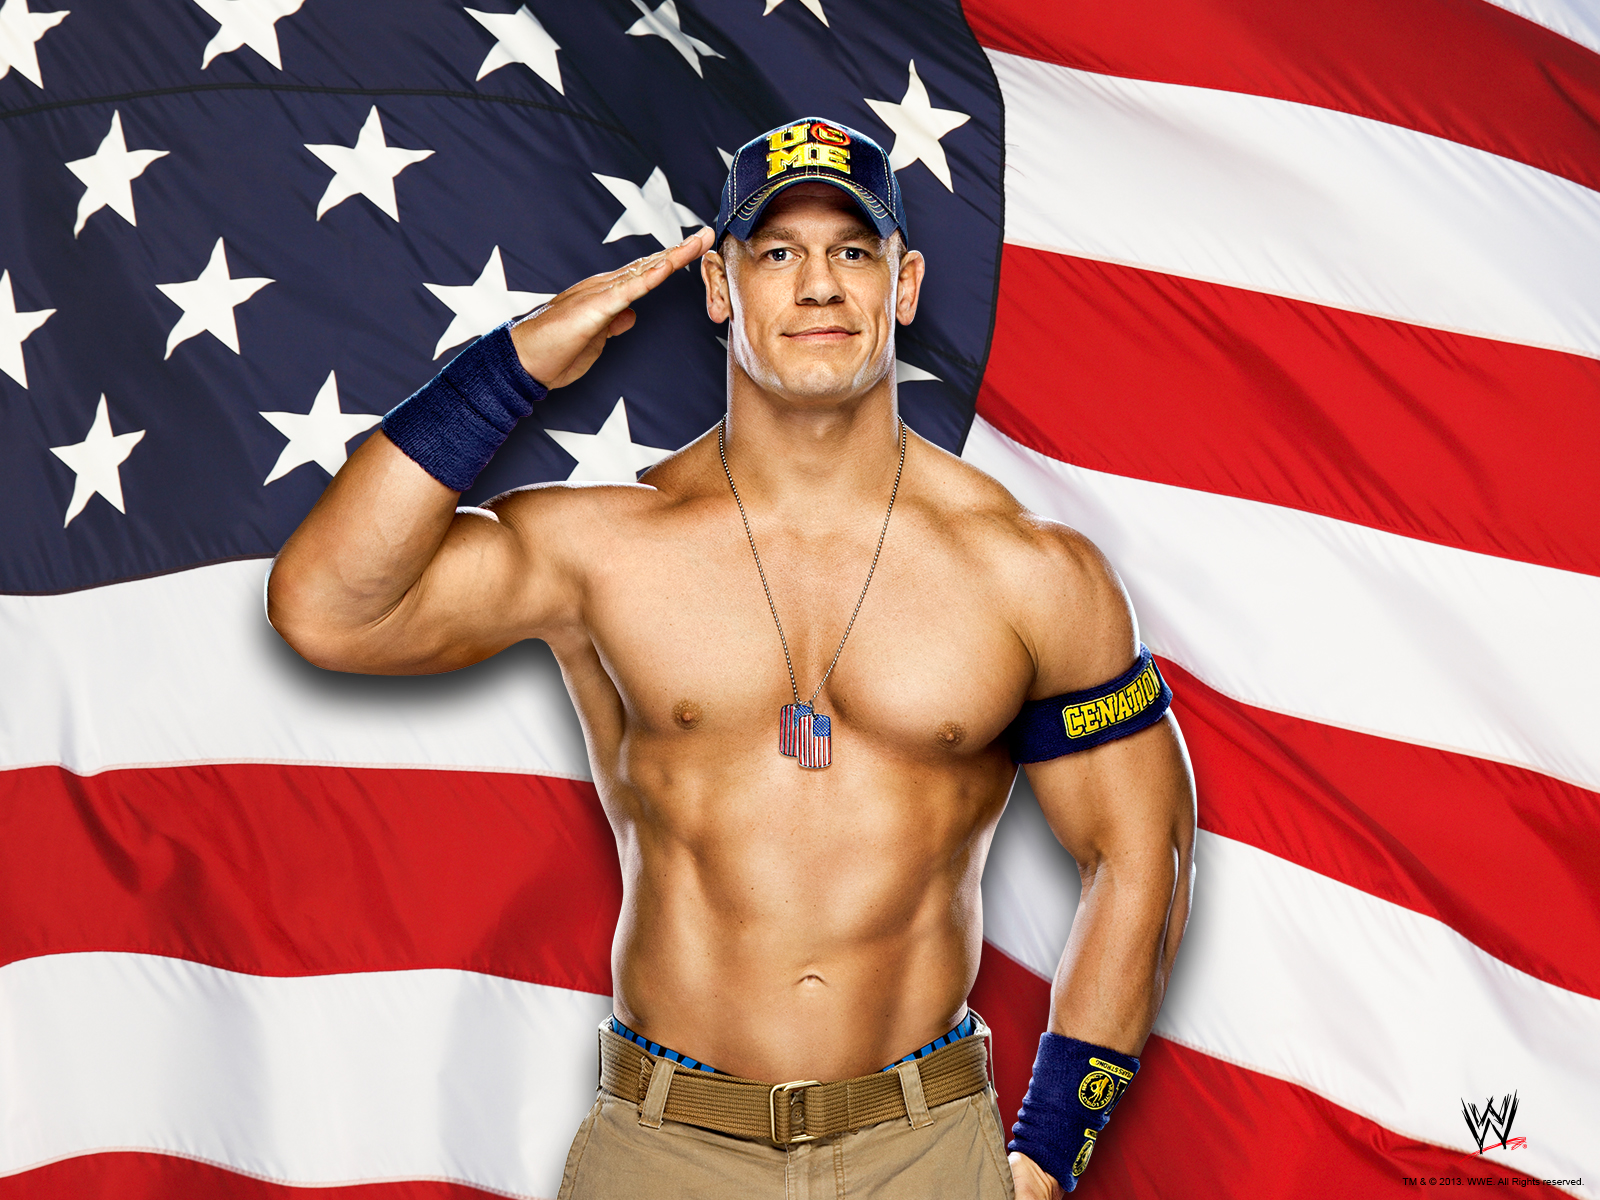 wwe images john cena wallpaper hd wallpaper and background photos